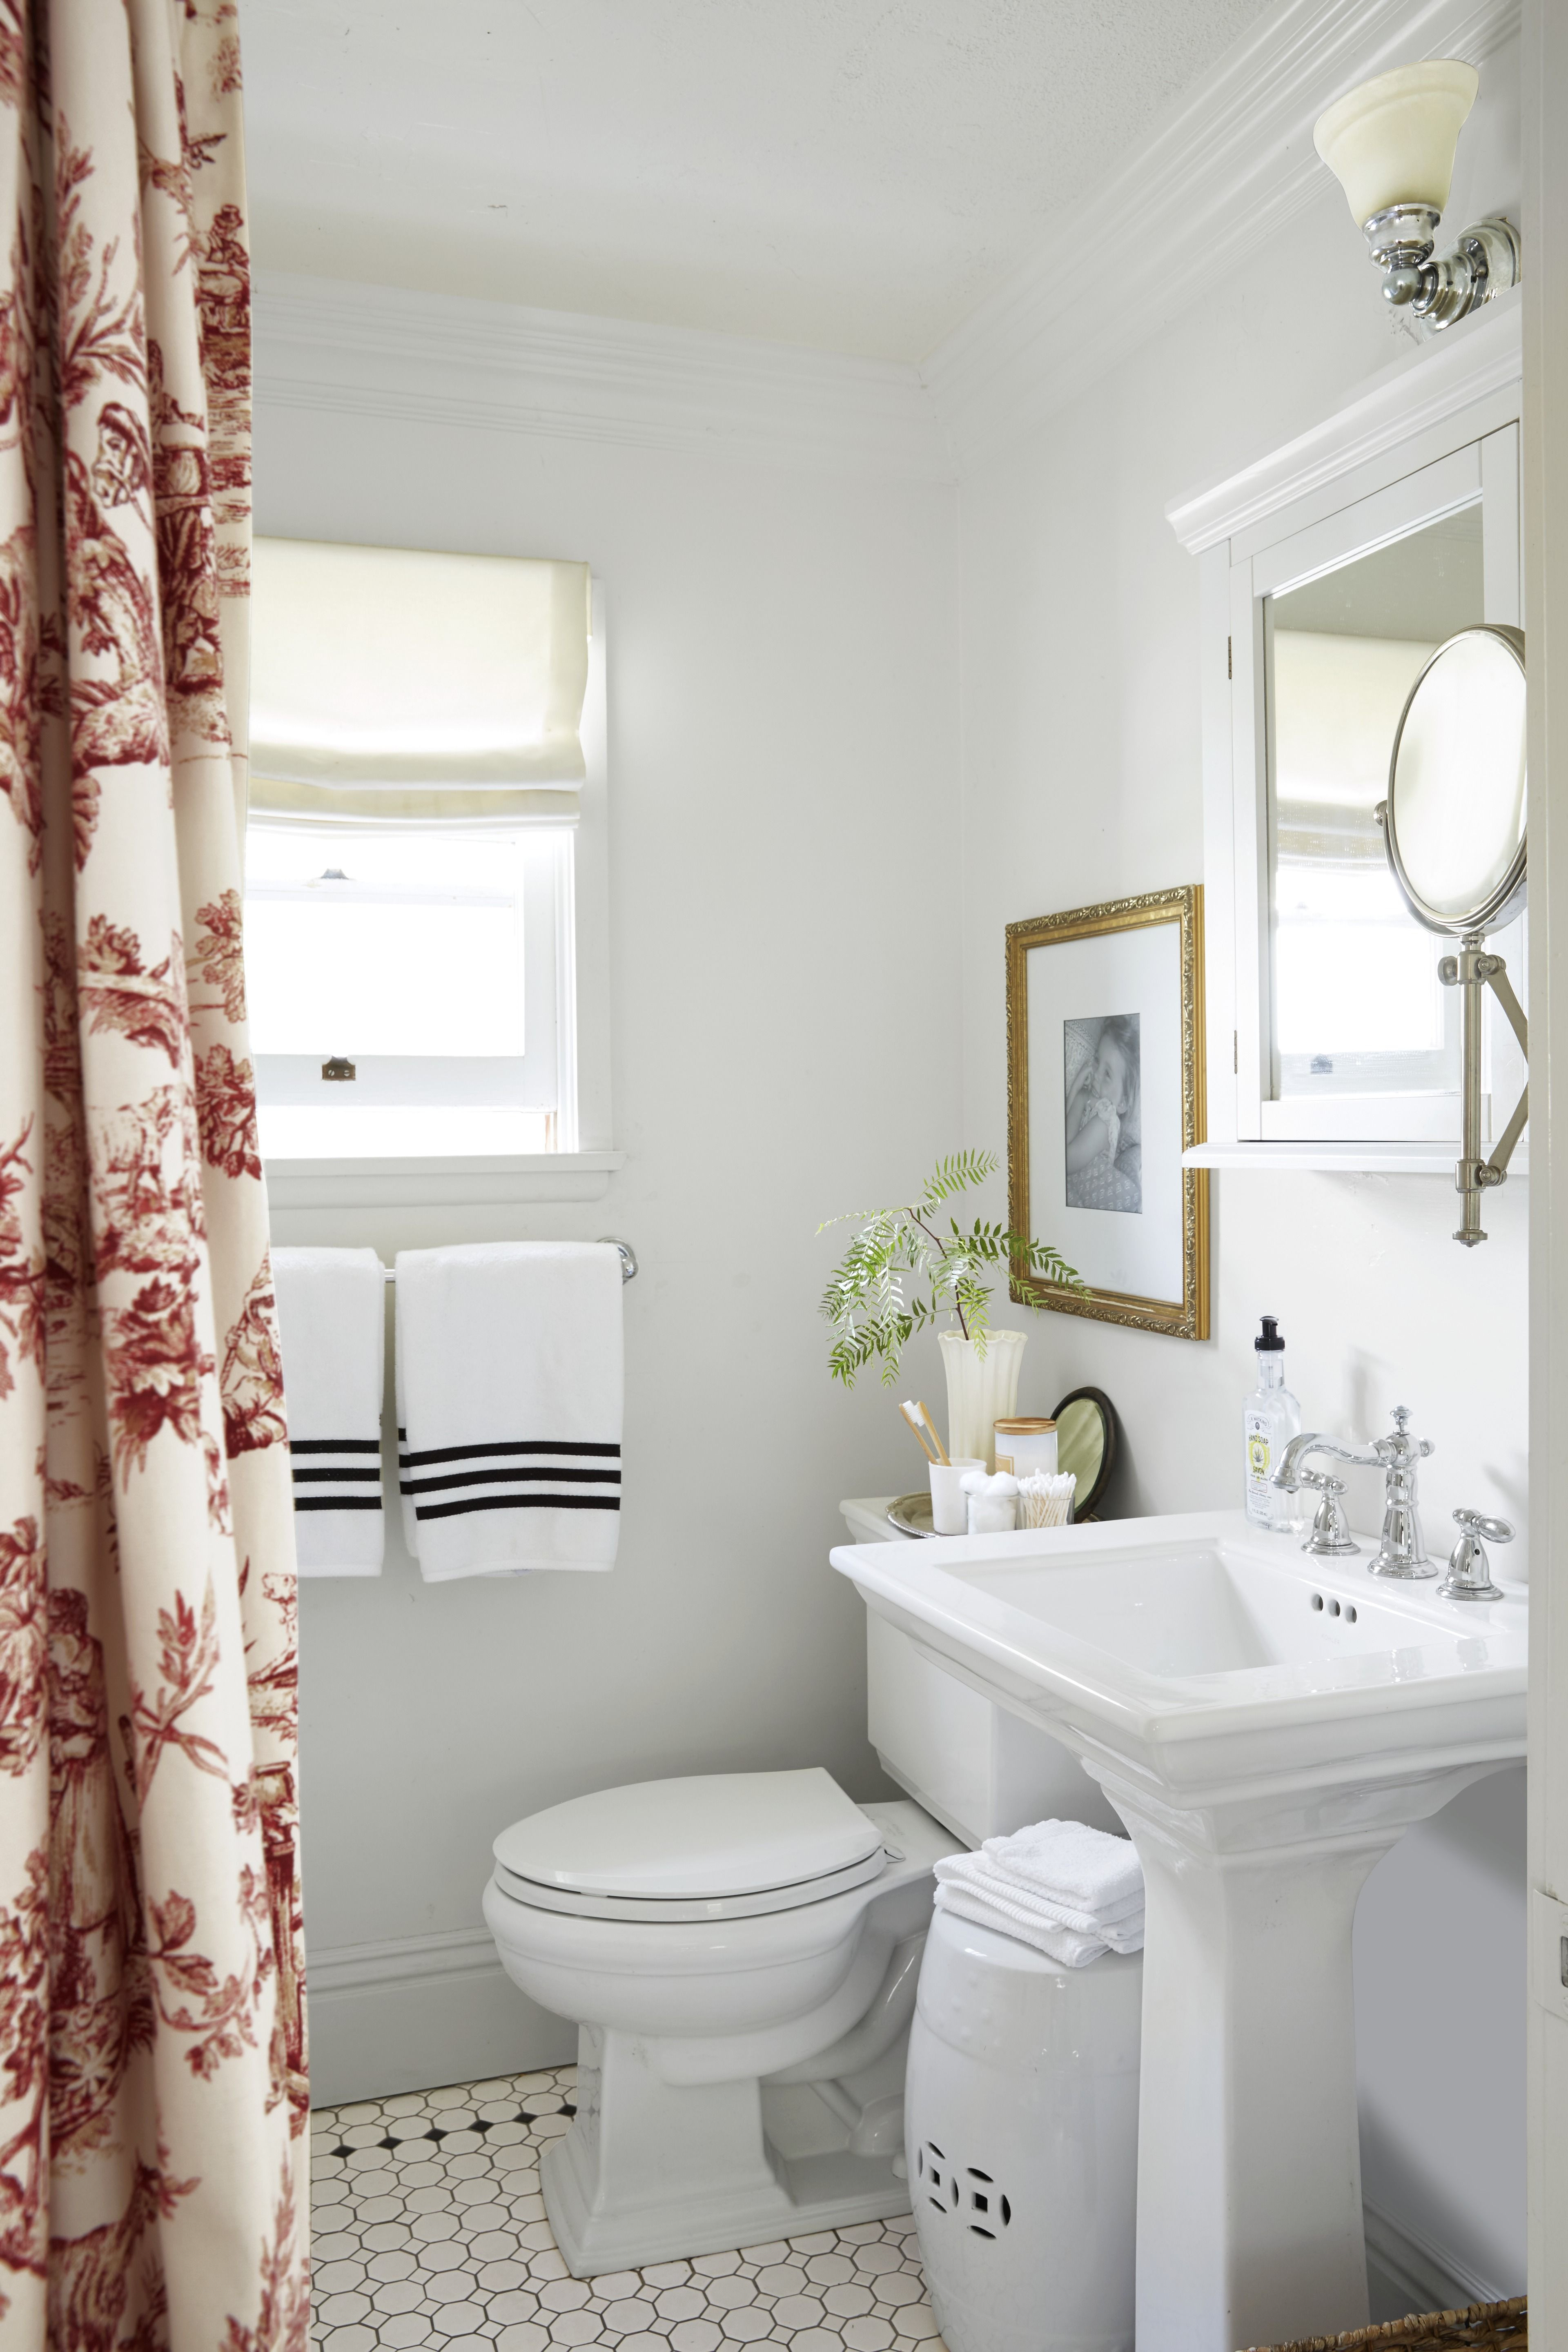 Ideas for Bathrooms Decorating Best Of 50 Bathroom Decorating Ideas Of Bathroom Decor